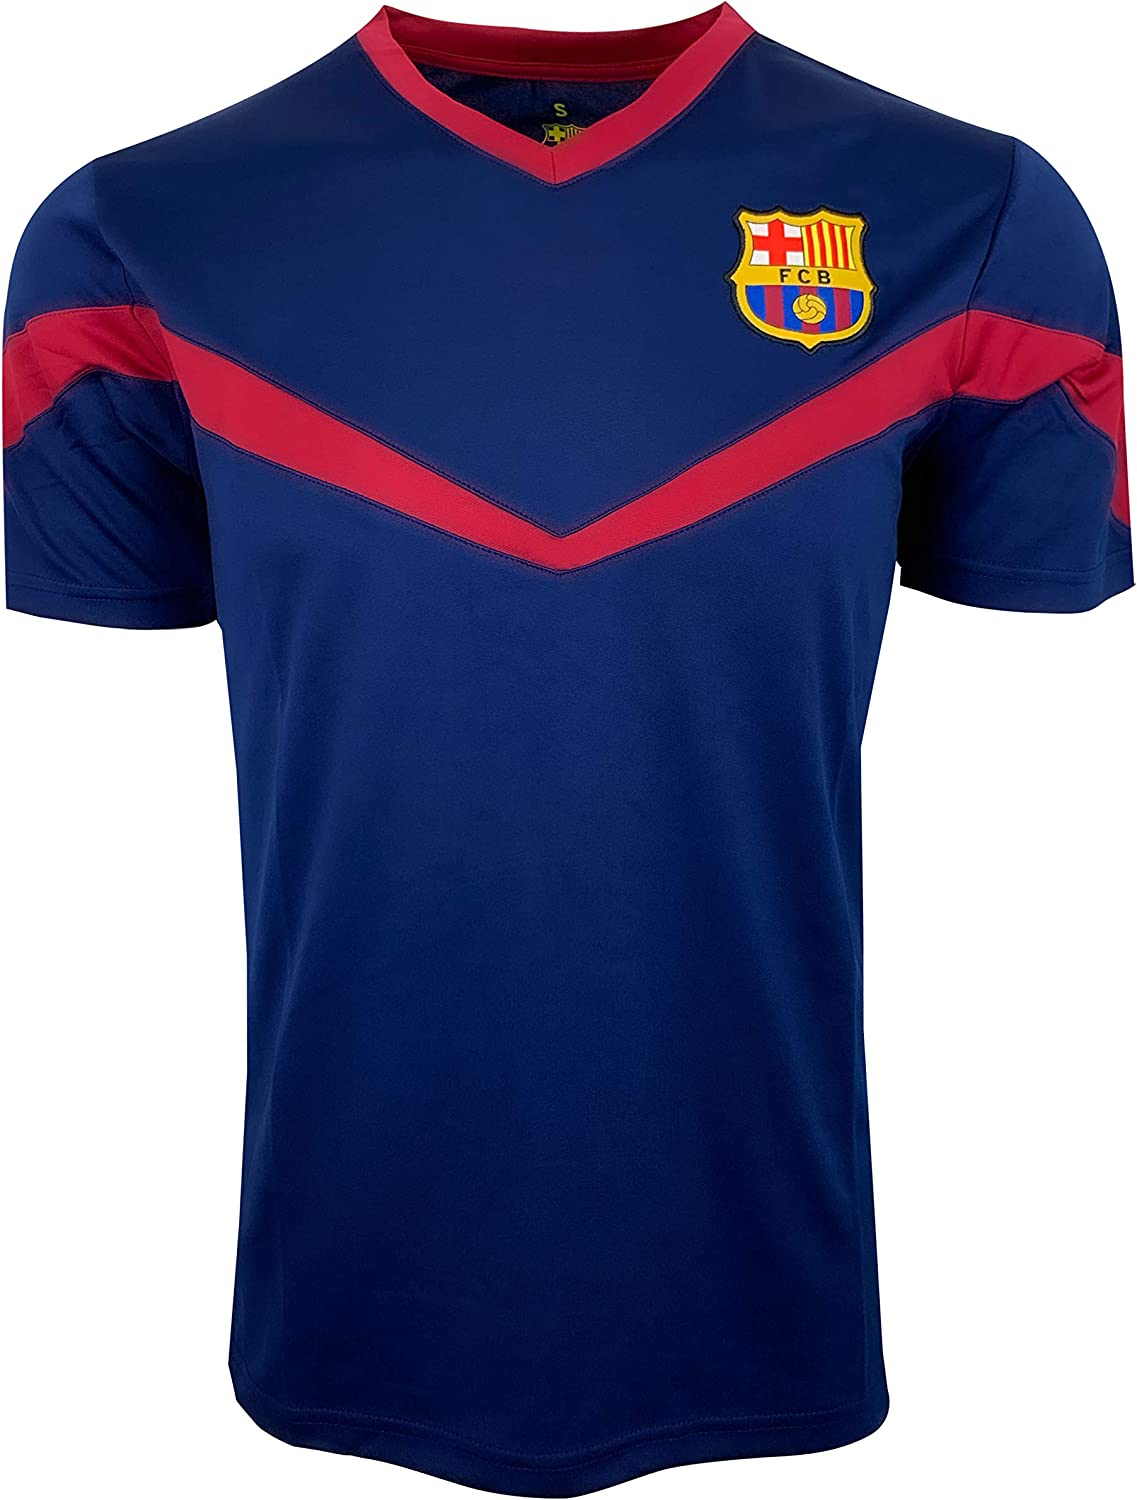 Icon Sports FC Barcelona Training Jersey (Adult Sizes), Licensed Barcelona Shirt